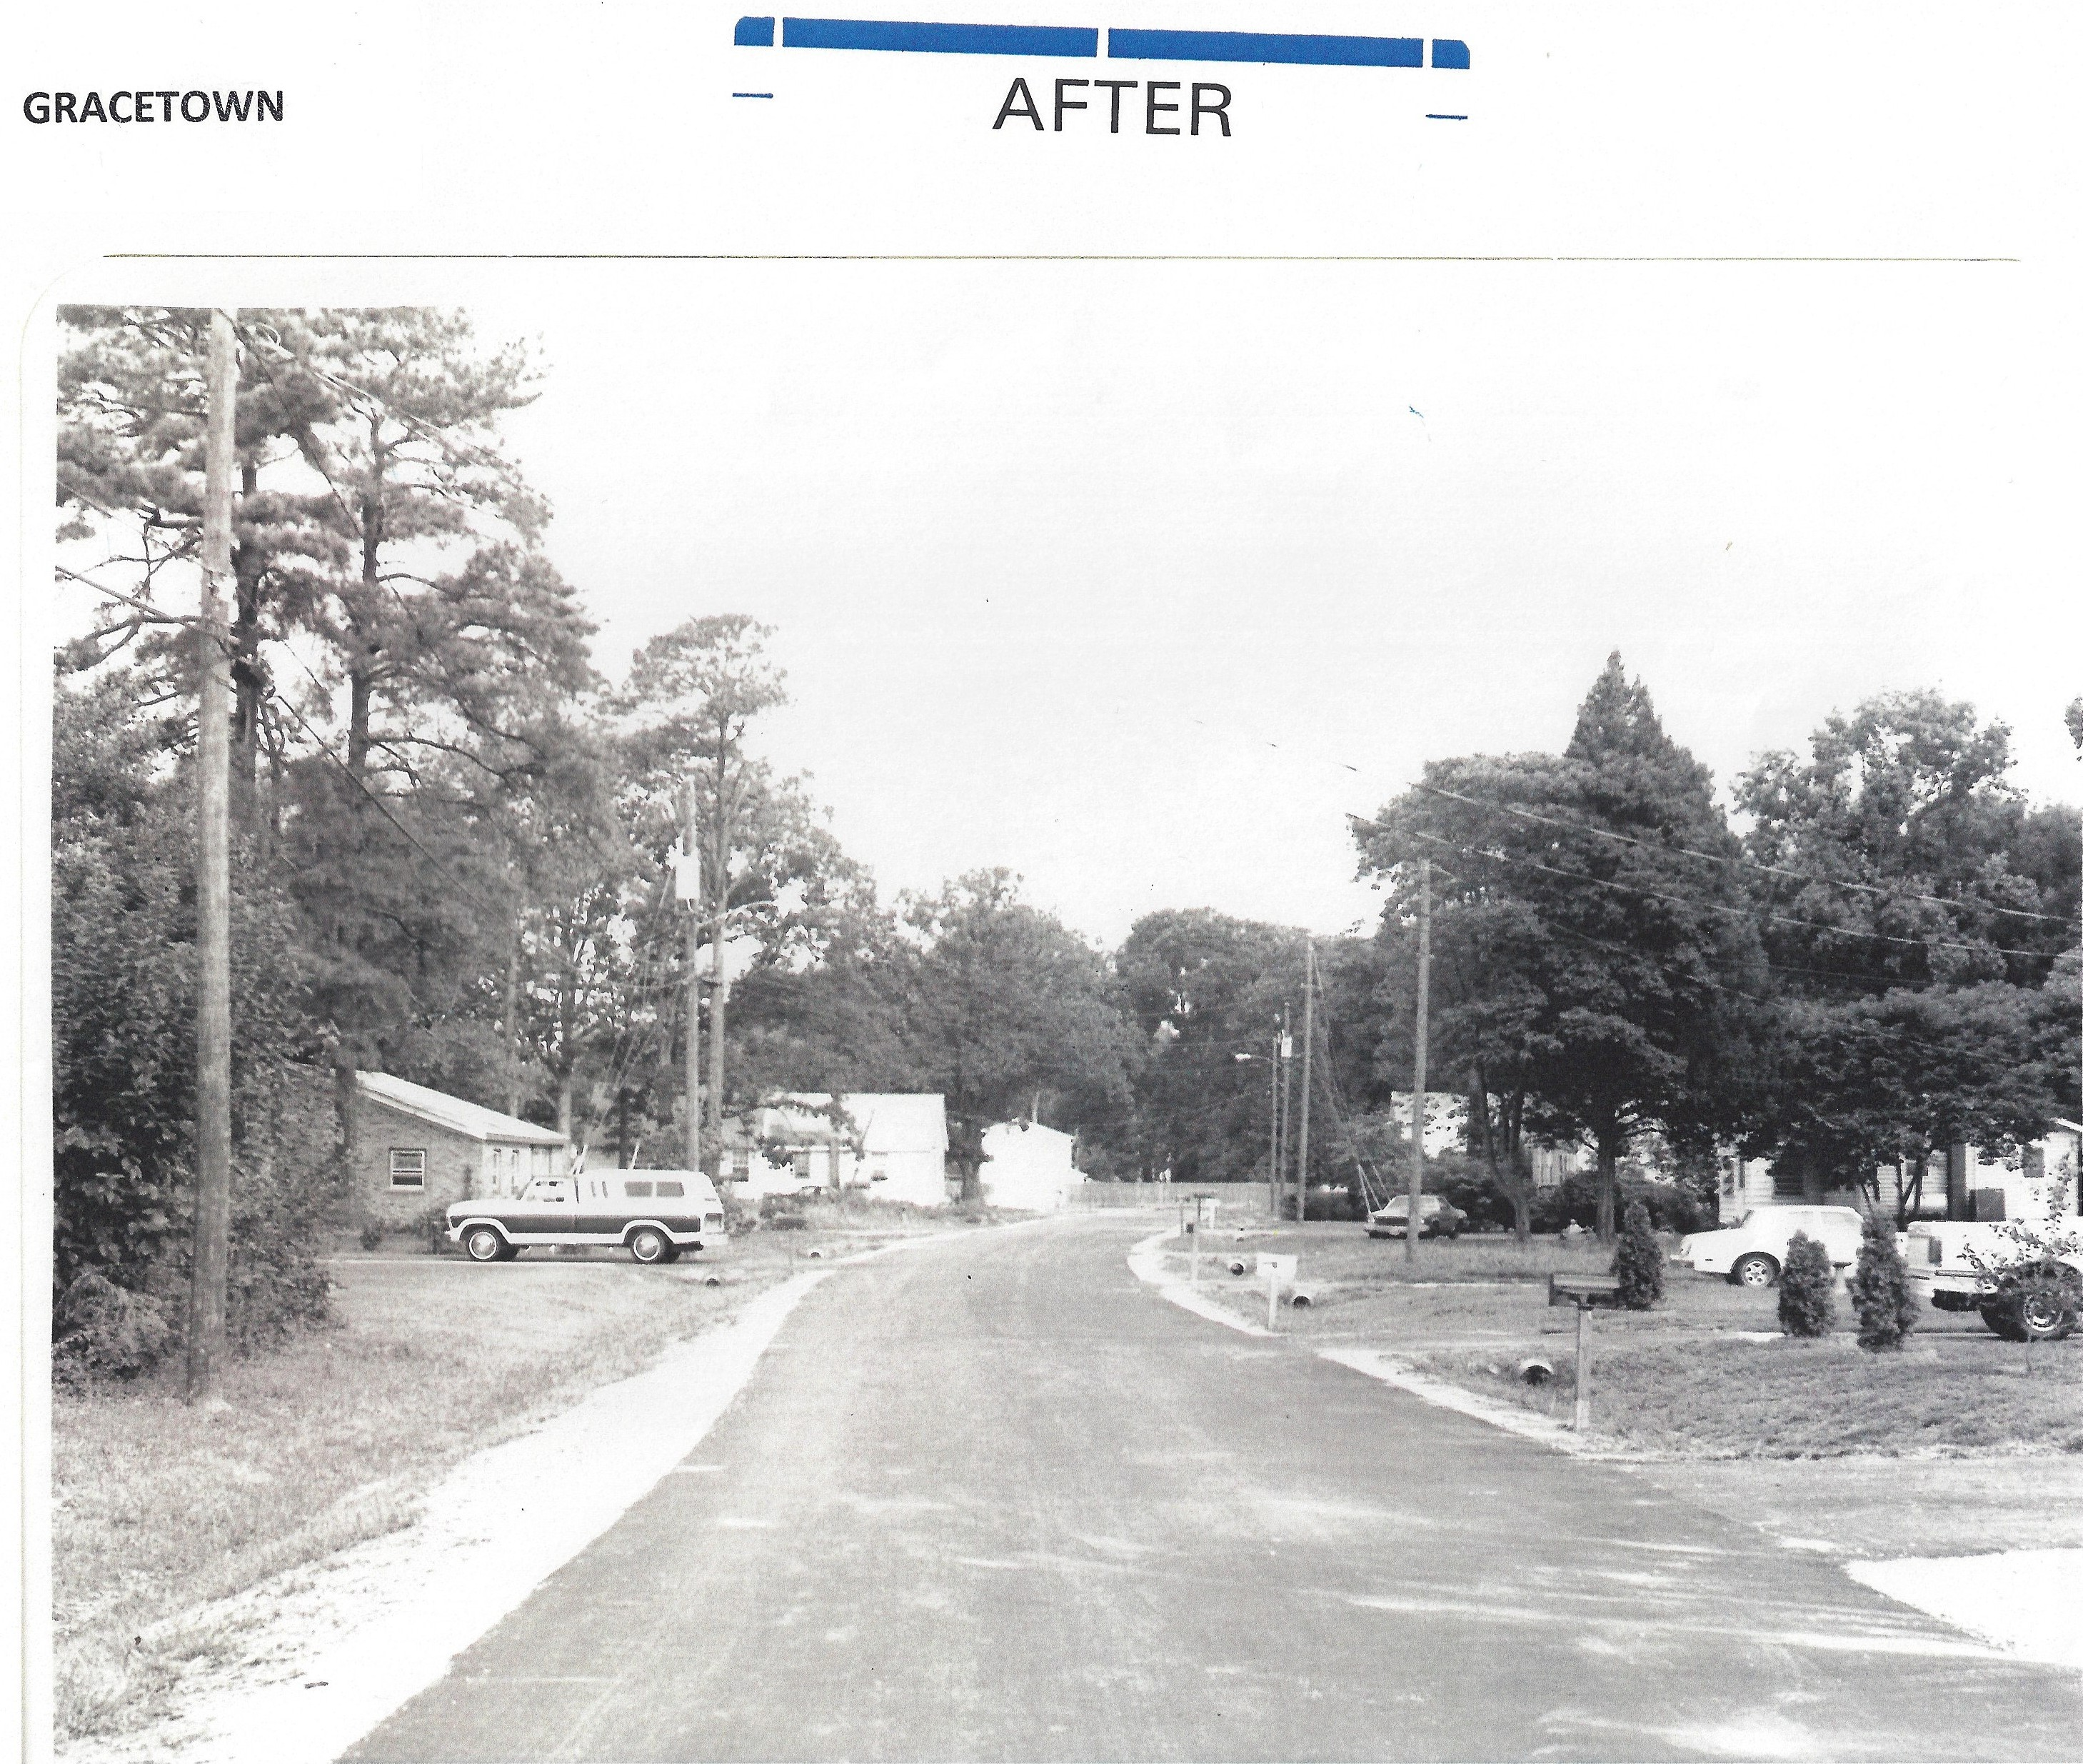 Gracetown - after